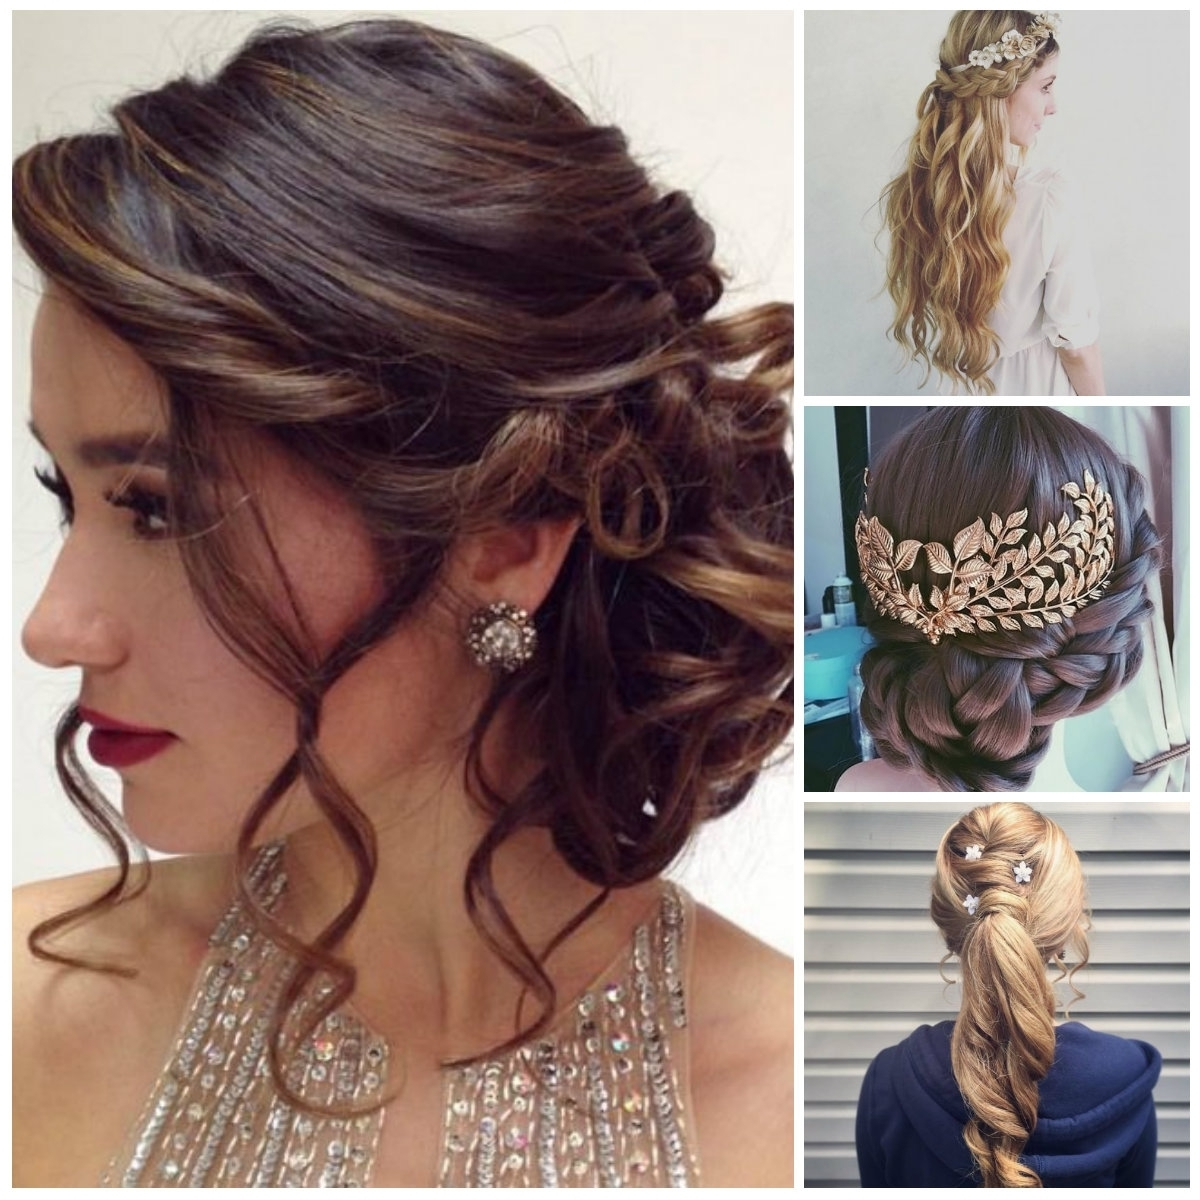 Unіquе Hairstyles For Formal Events Hair Style Connections | Hair With Regard To Dressy Updo Hairstyles (View 14 of 15)